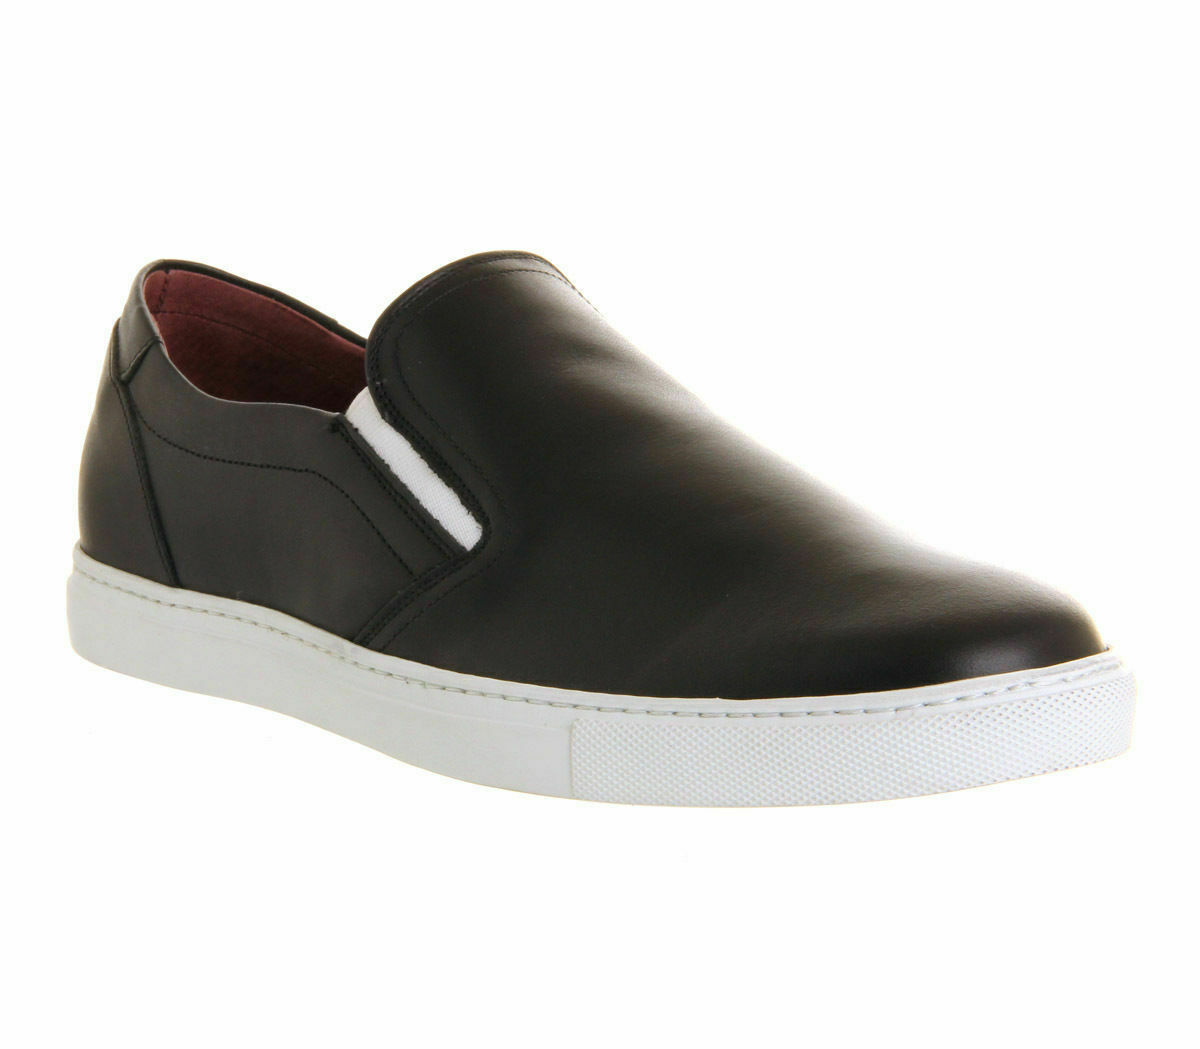 BNIB Poste Full Leather Casual shoes. Colour Black. Size 9. Office.co